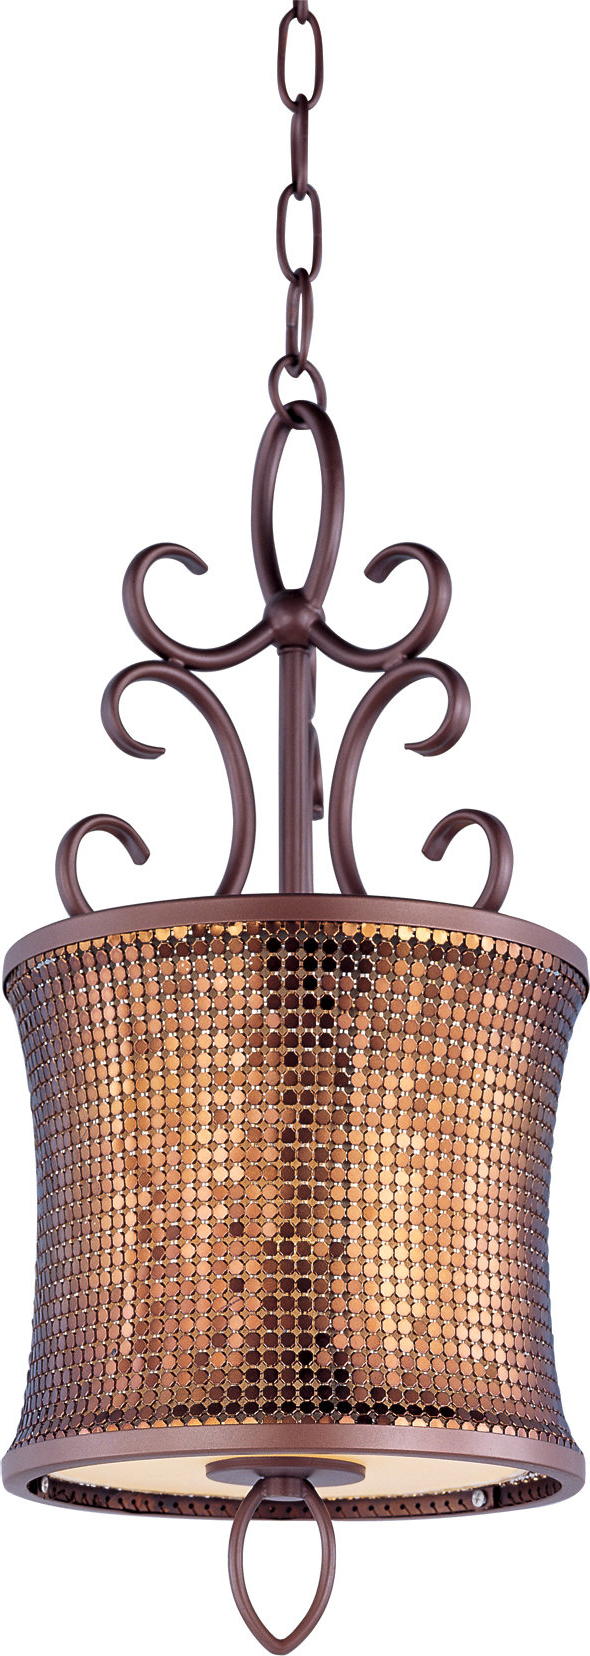 Fleur De Lis Living Willems 1 Light Single Drum Pendant Intended For Widely Used Willems 1 Light Single Drum Pendants (Gallery 1 of 20)